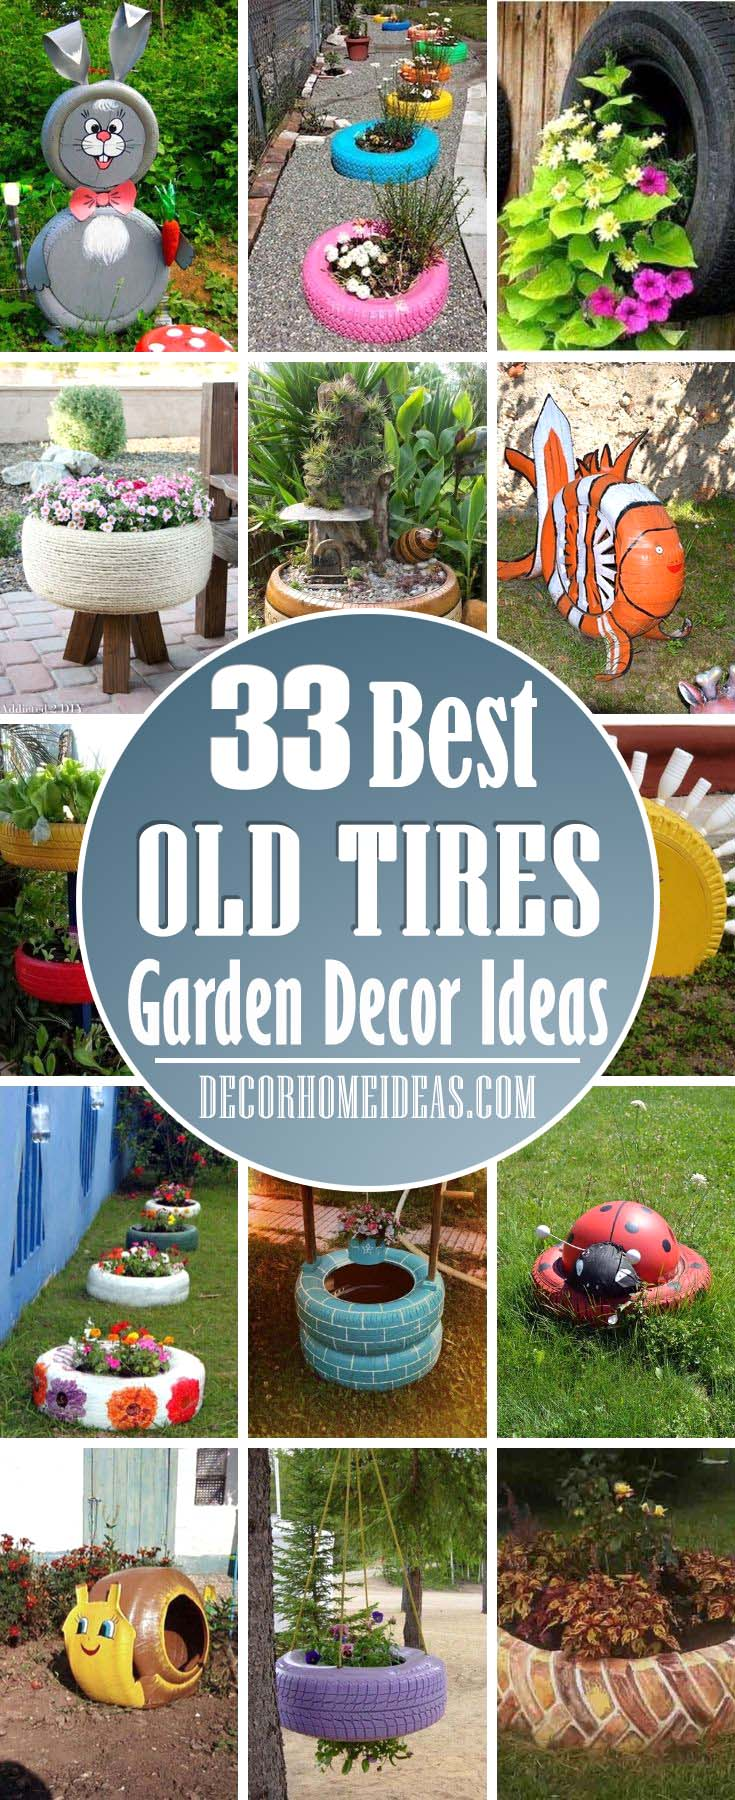 Best Old Tires Garden Decor. How to transform old tires into a beautiful garden decor. #garden #oldtires #tires #diy #decorhomeideas